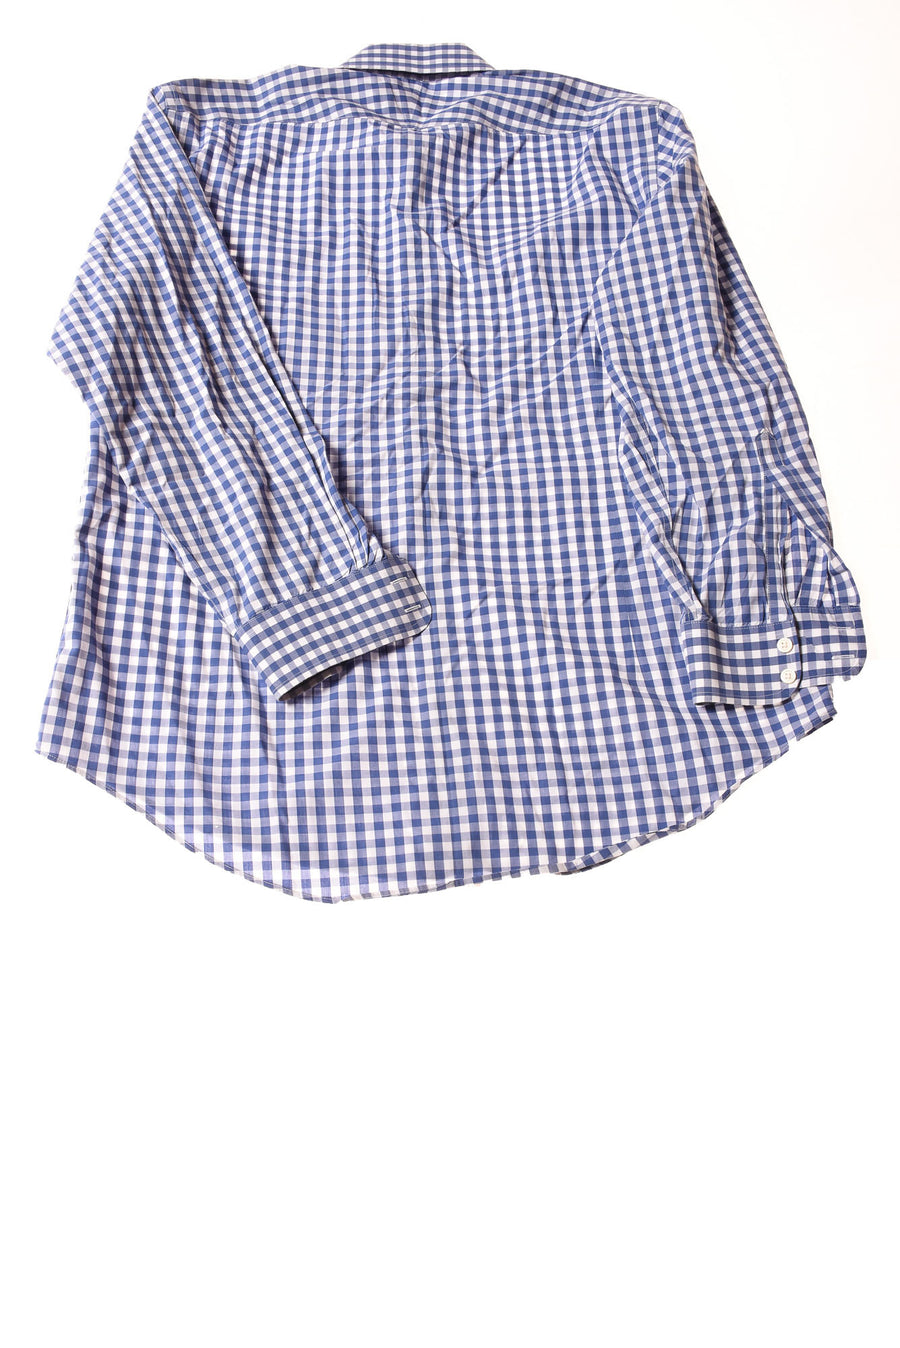 Men's Shirt By Charles Tyrwhitt